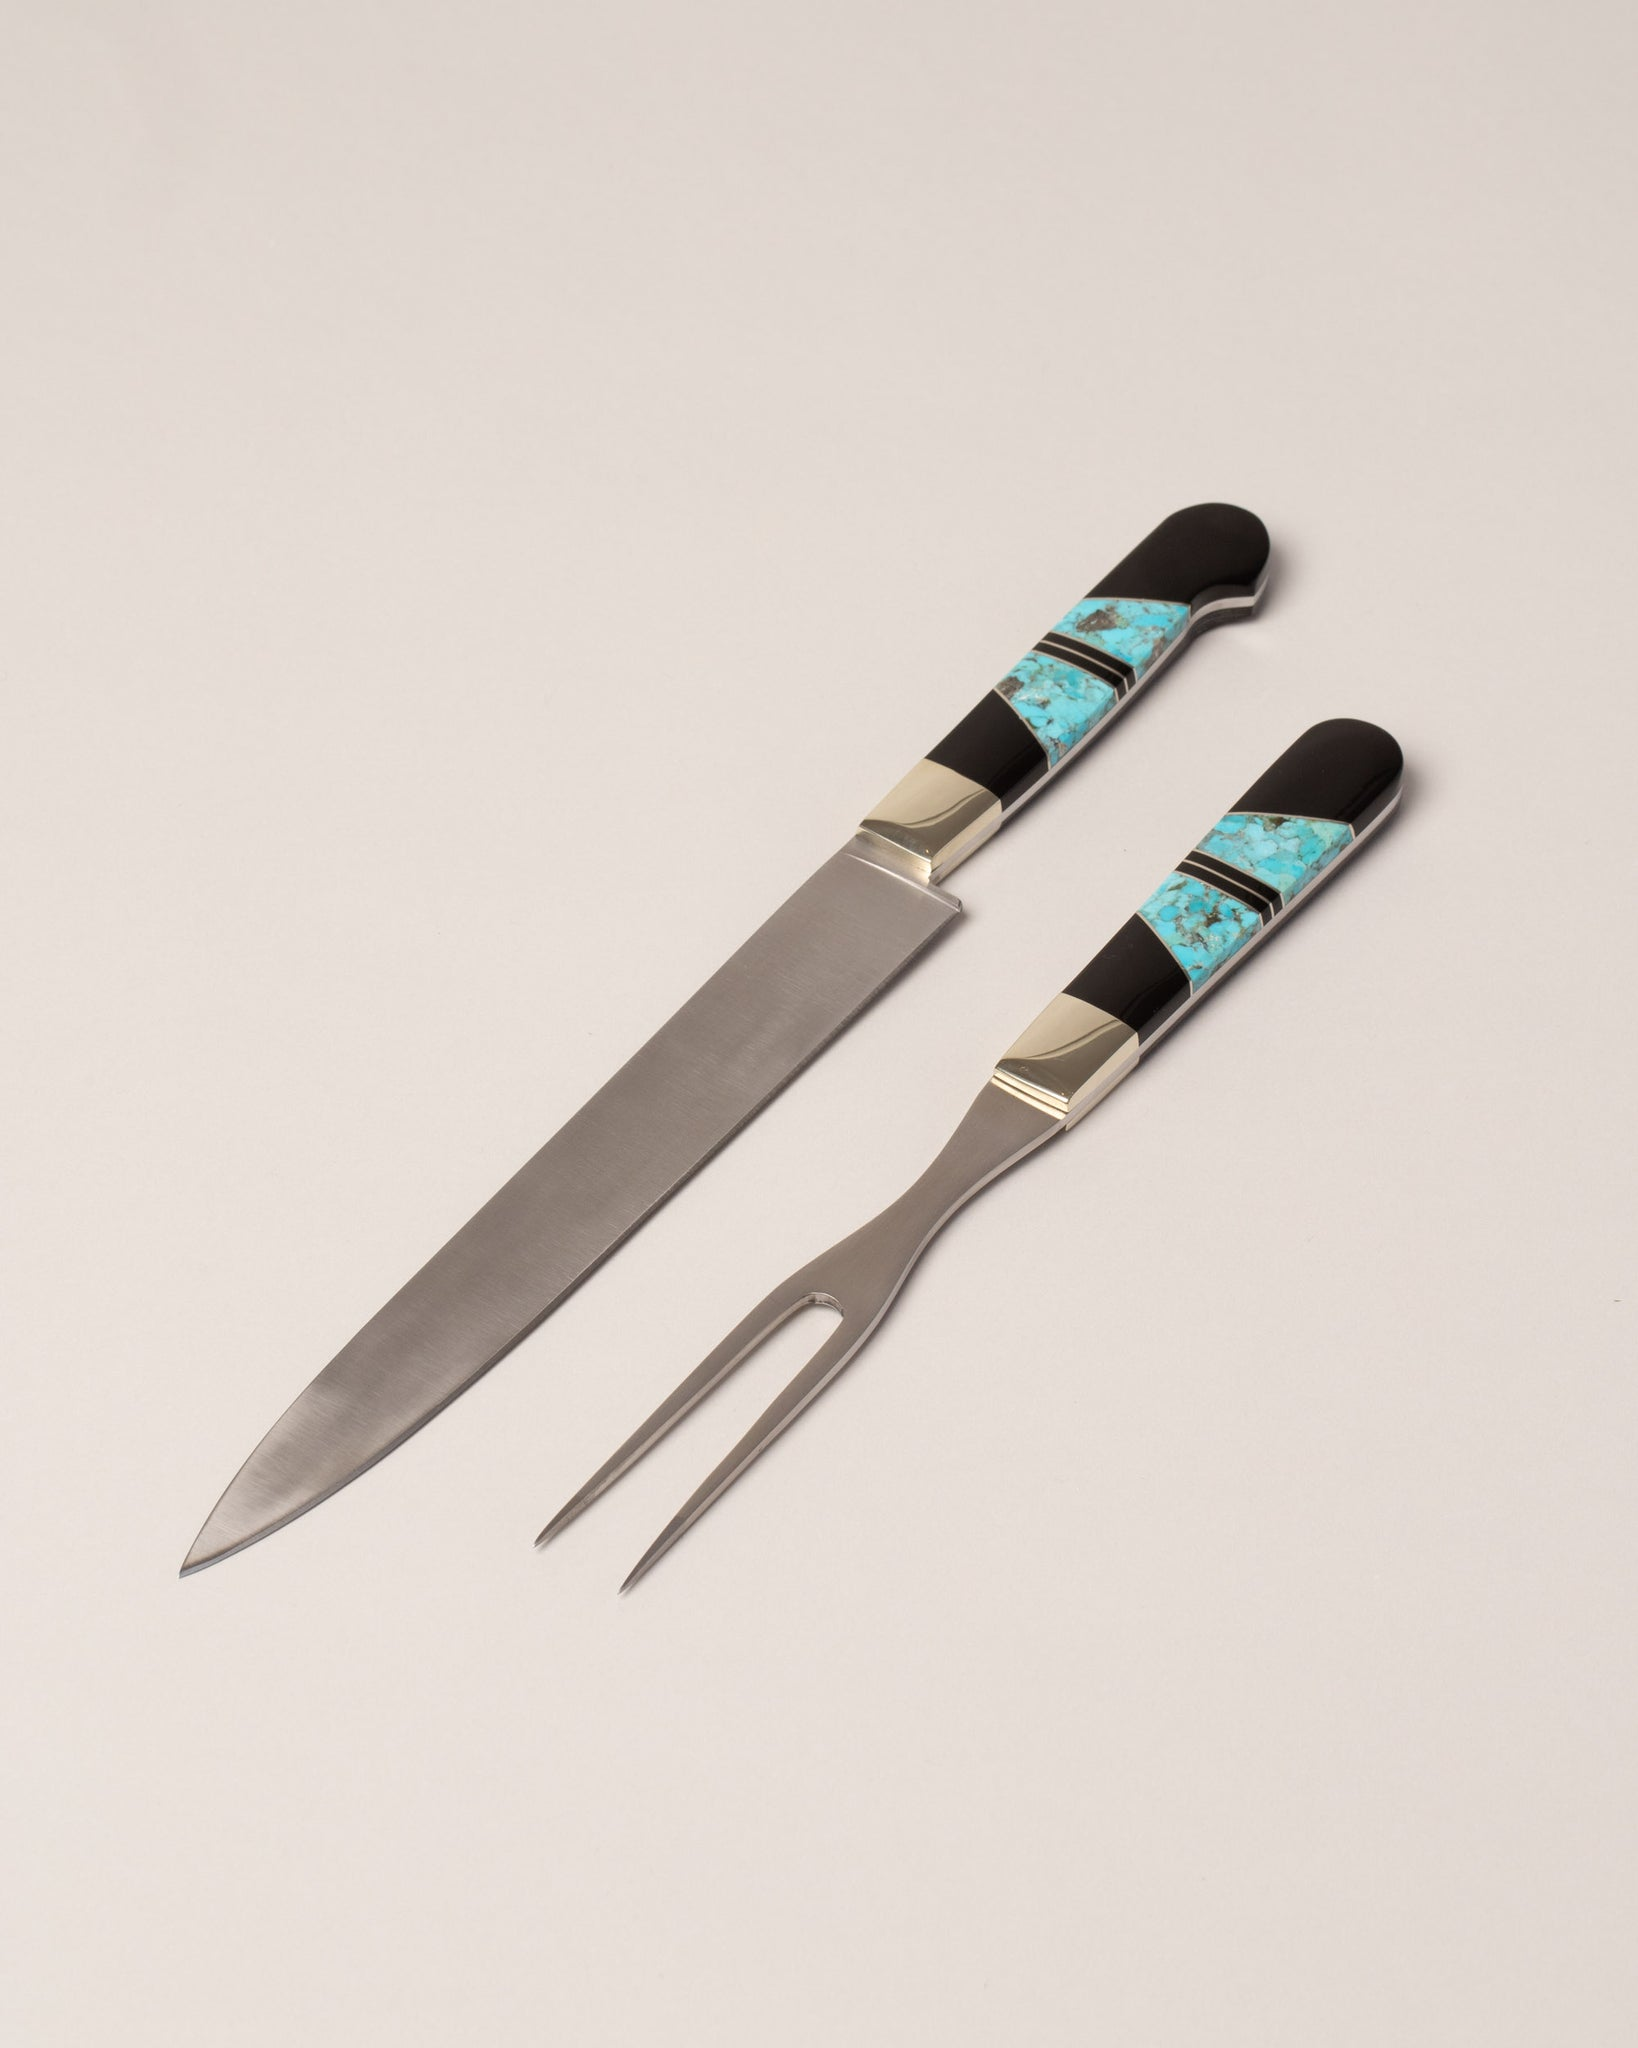 Santa Fe Stoneworks Carving Set in Jet & Turquoise